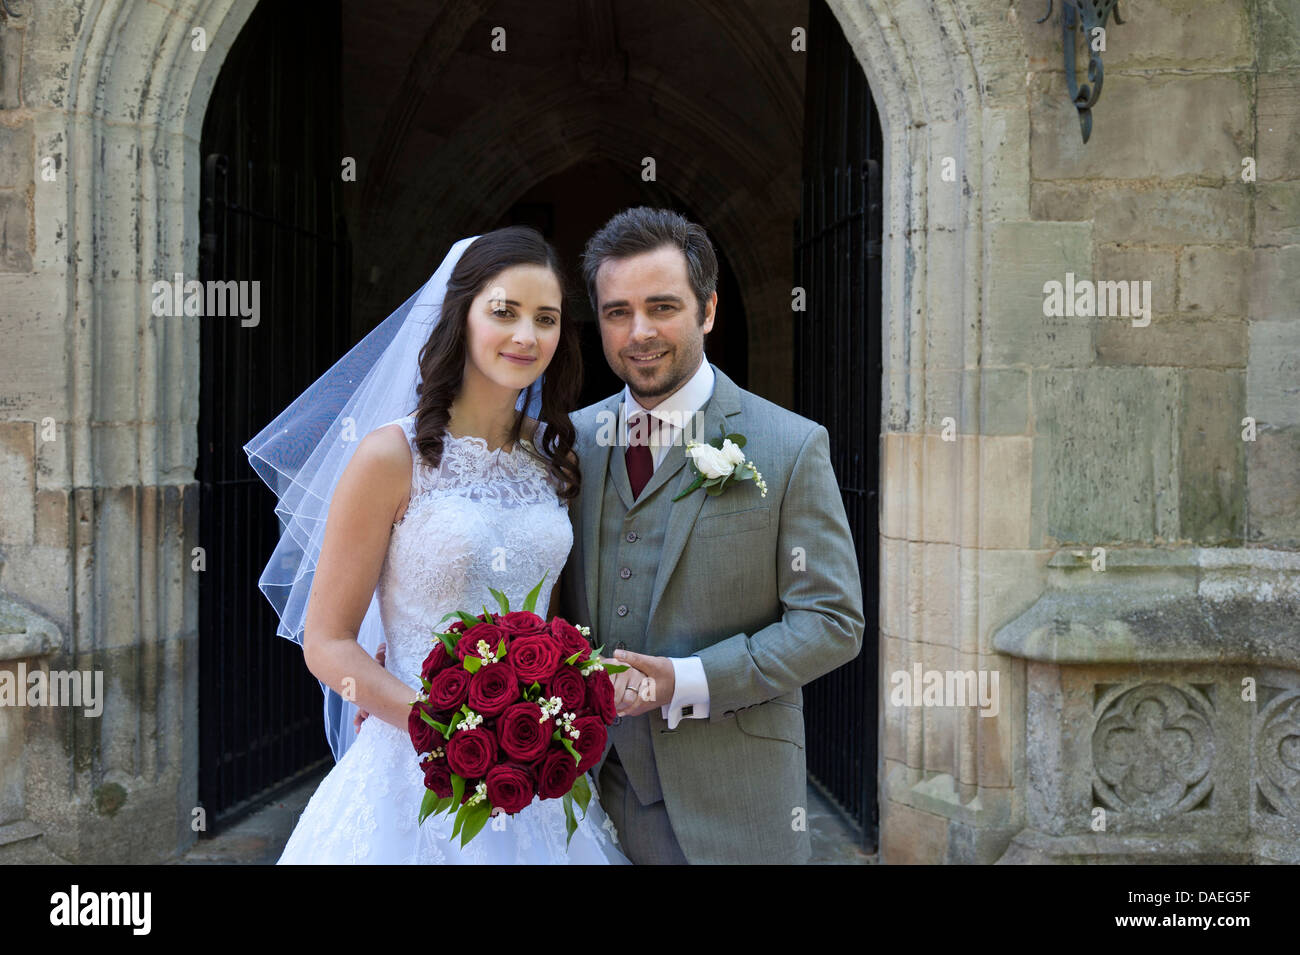 Attractive happy young traditional Bride and Groom just married standing outside the church door - Stock Image